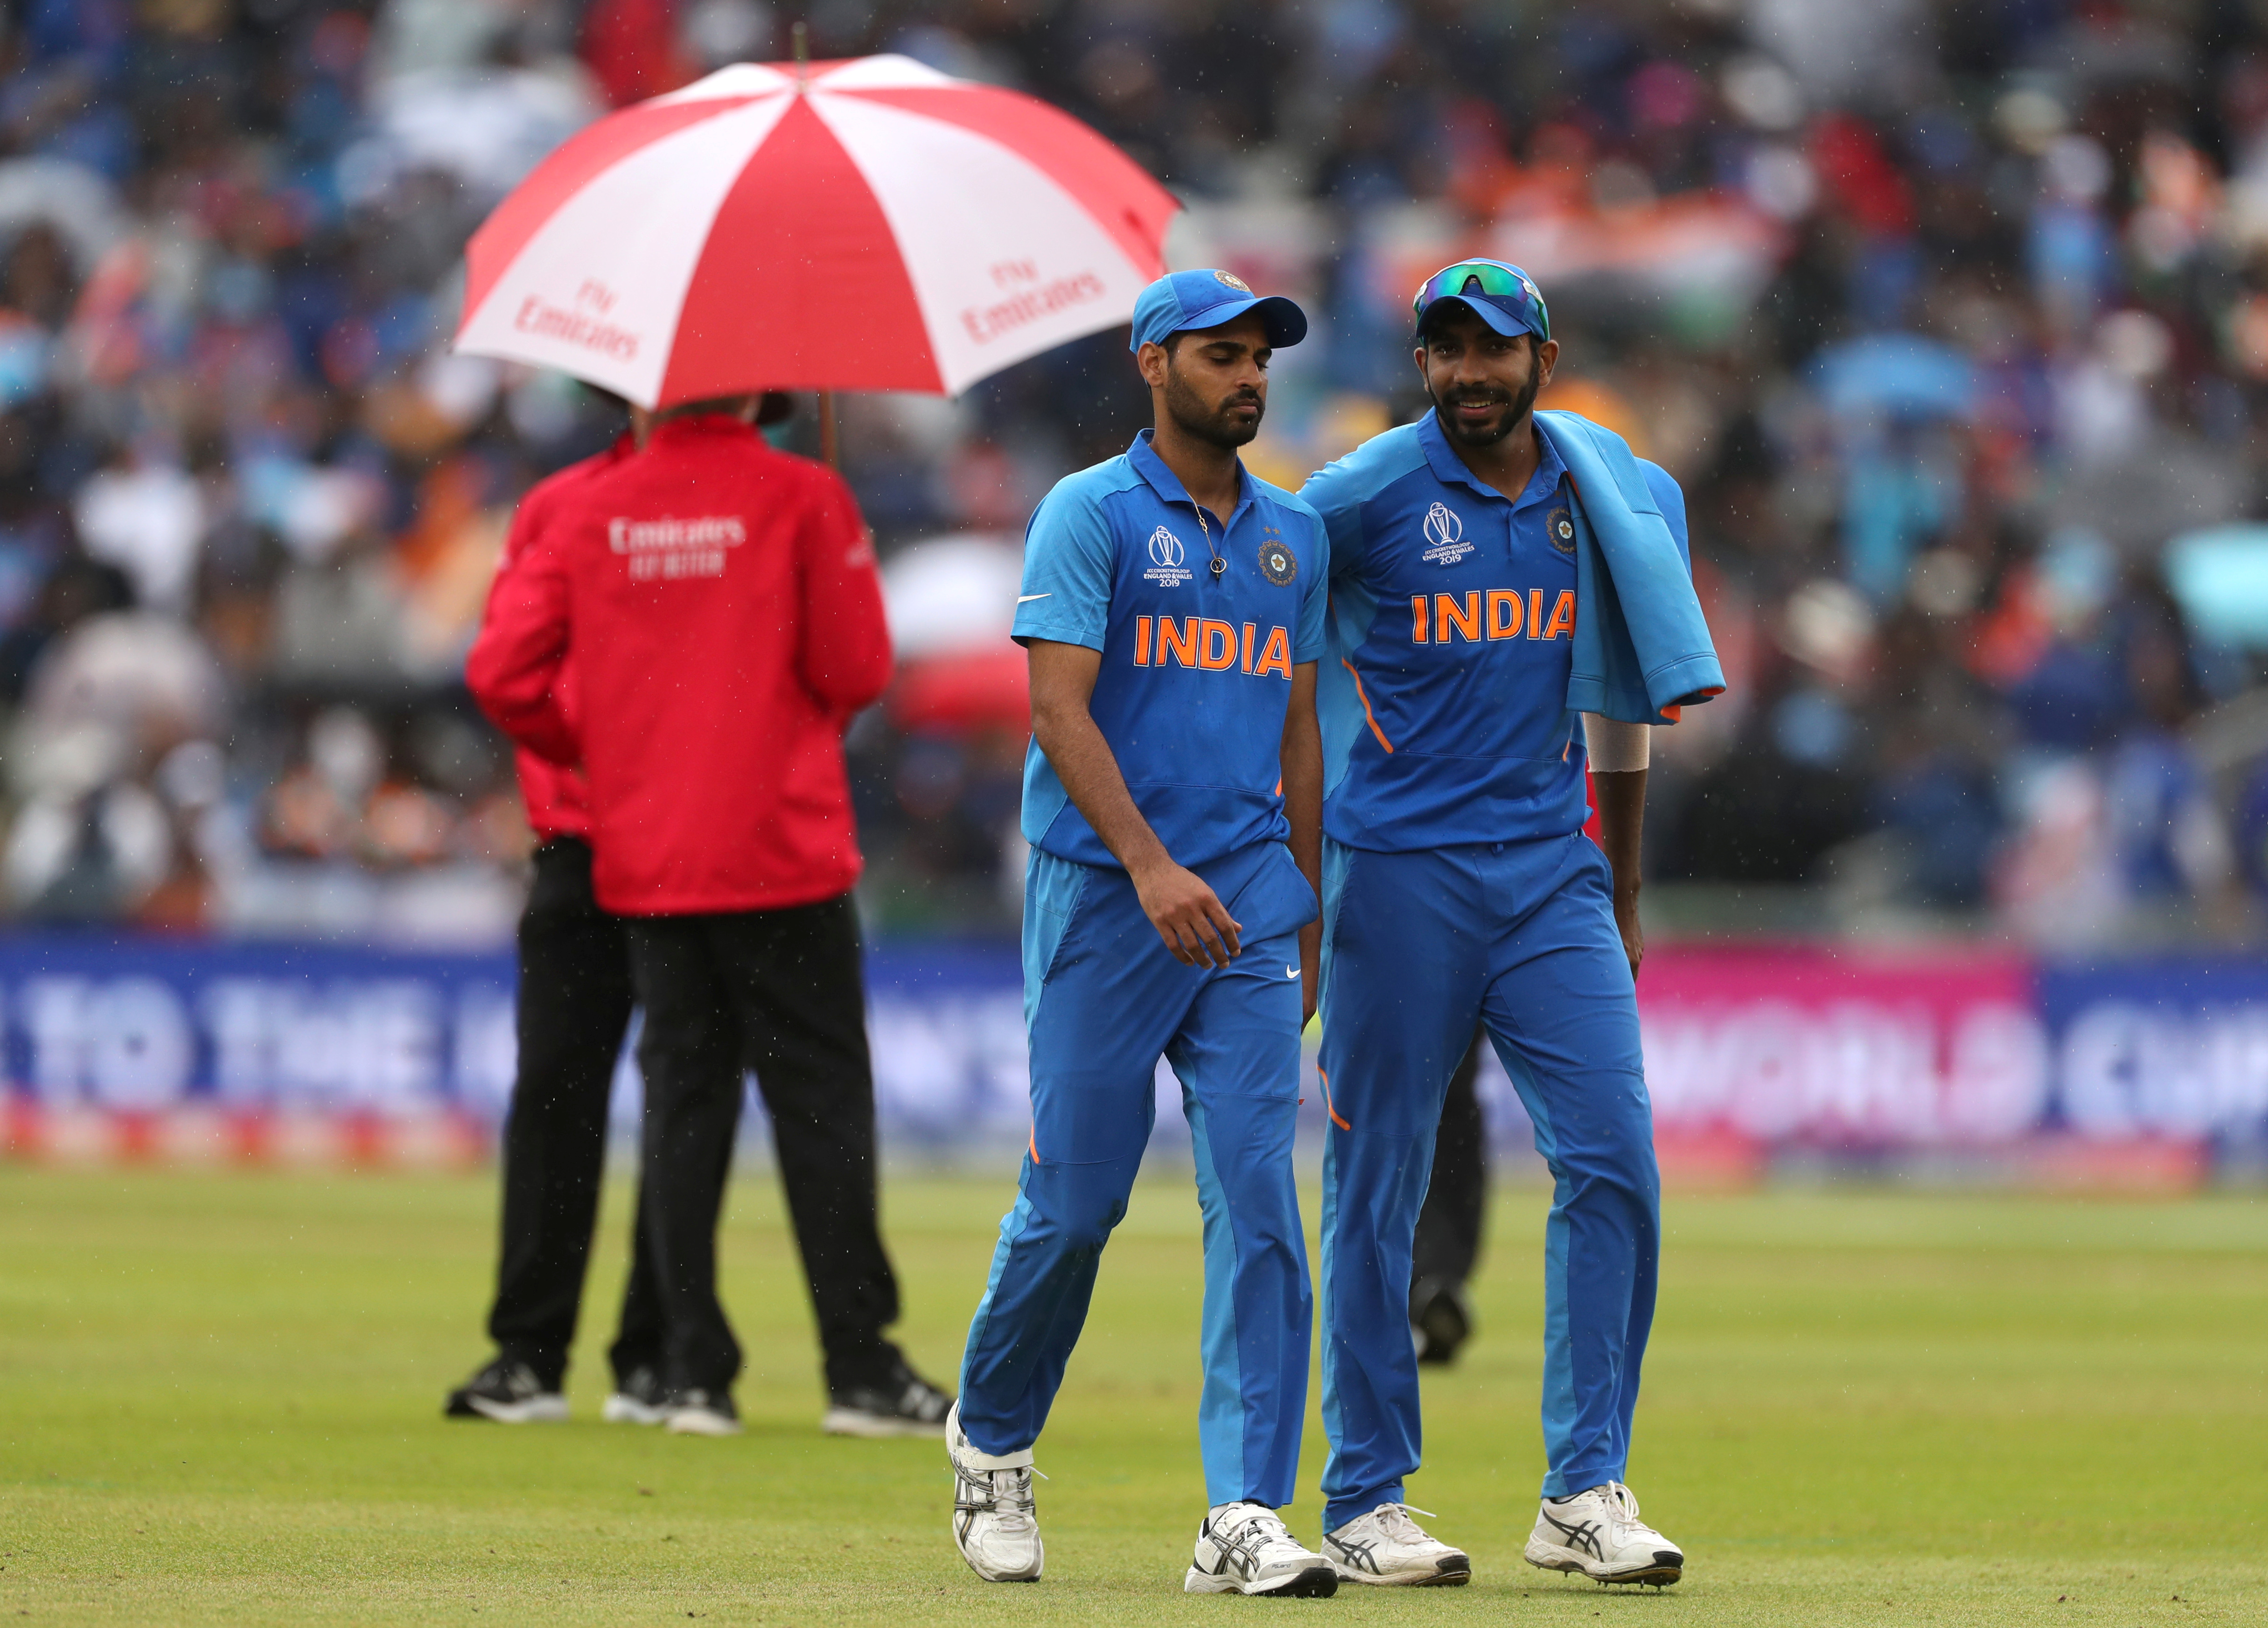 India's Bhuvneshwar Kumar and Jasprit Bumrah as play is stopped due to rain   Action Images via Reuters/Lee Smith